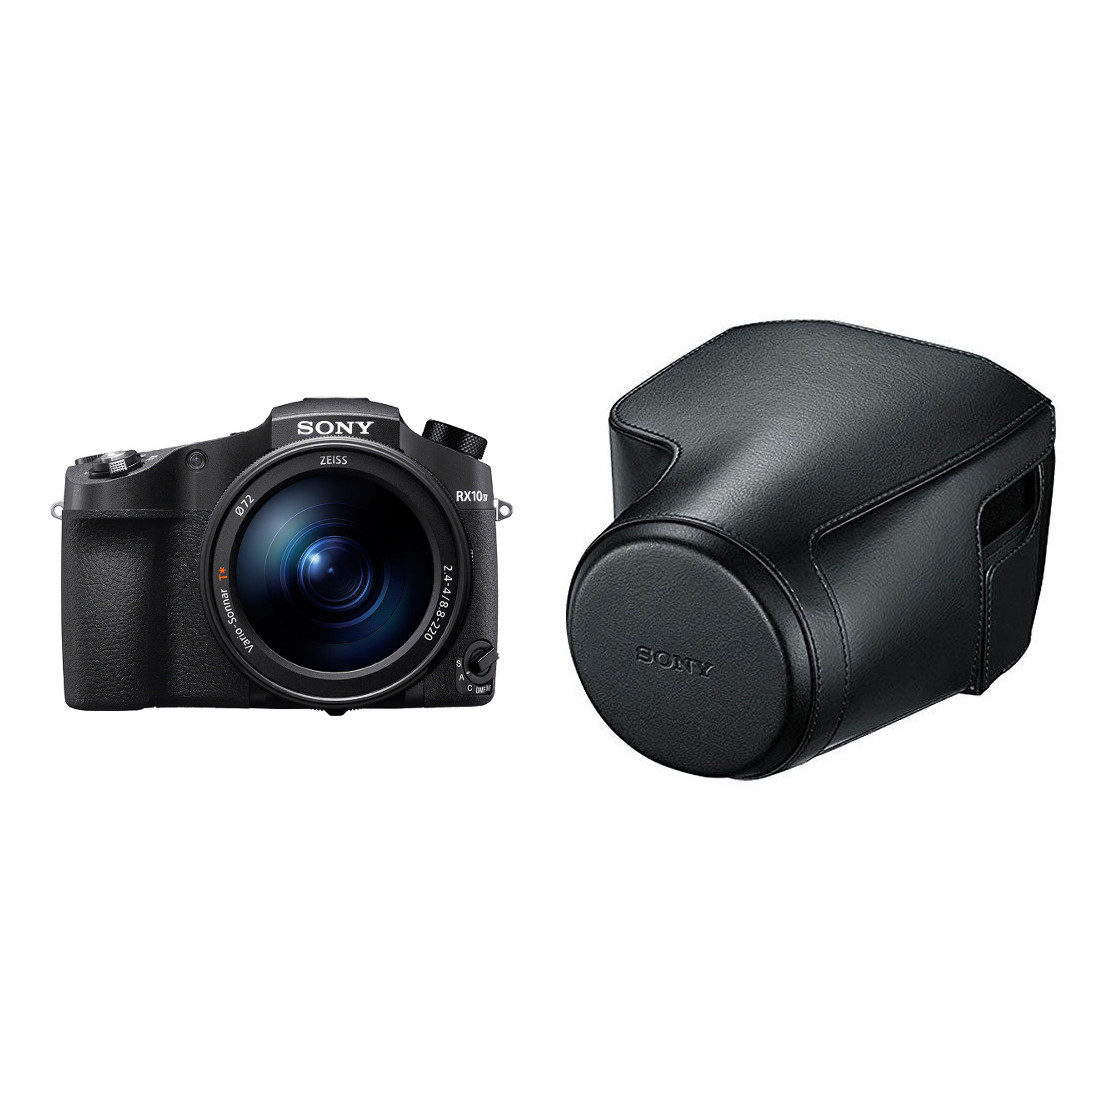 Sony Cybershot DSC-RX10 IV compact camera + Sony LCJ-RXJB tas <br/>€ 1699.00 <br/> <a href='https://www.cameranu.nl/fotografie/?tt=12190_474631_241358_&r=https%3A%2F%2Fwww.cameranu.nl%2Fnl%2Fp3032815%2Fsony-cybershot-dsc-rx10-iv-compact-camera-sony-lcj-rxjb-tas%3Fchannable%3D002a5969640033303332383135cf%26utm_campaign%3D%26utm_content%3DSony%2Bcompact%2Bcamera%26utm_source%3DTradetracker%26utm_medium%3Dcpc%26utm_term%3DDigitale%2Bcamera%26apos%3Bs' target='_blank'>naar de winkel</a>